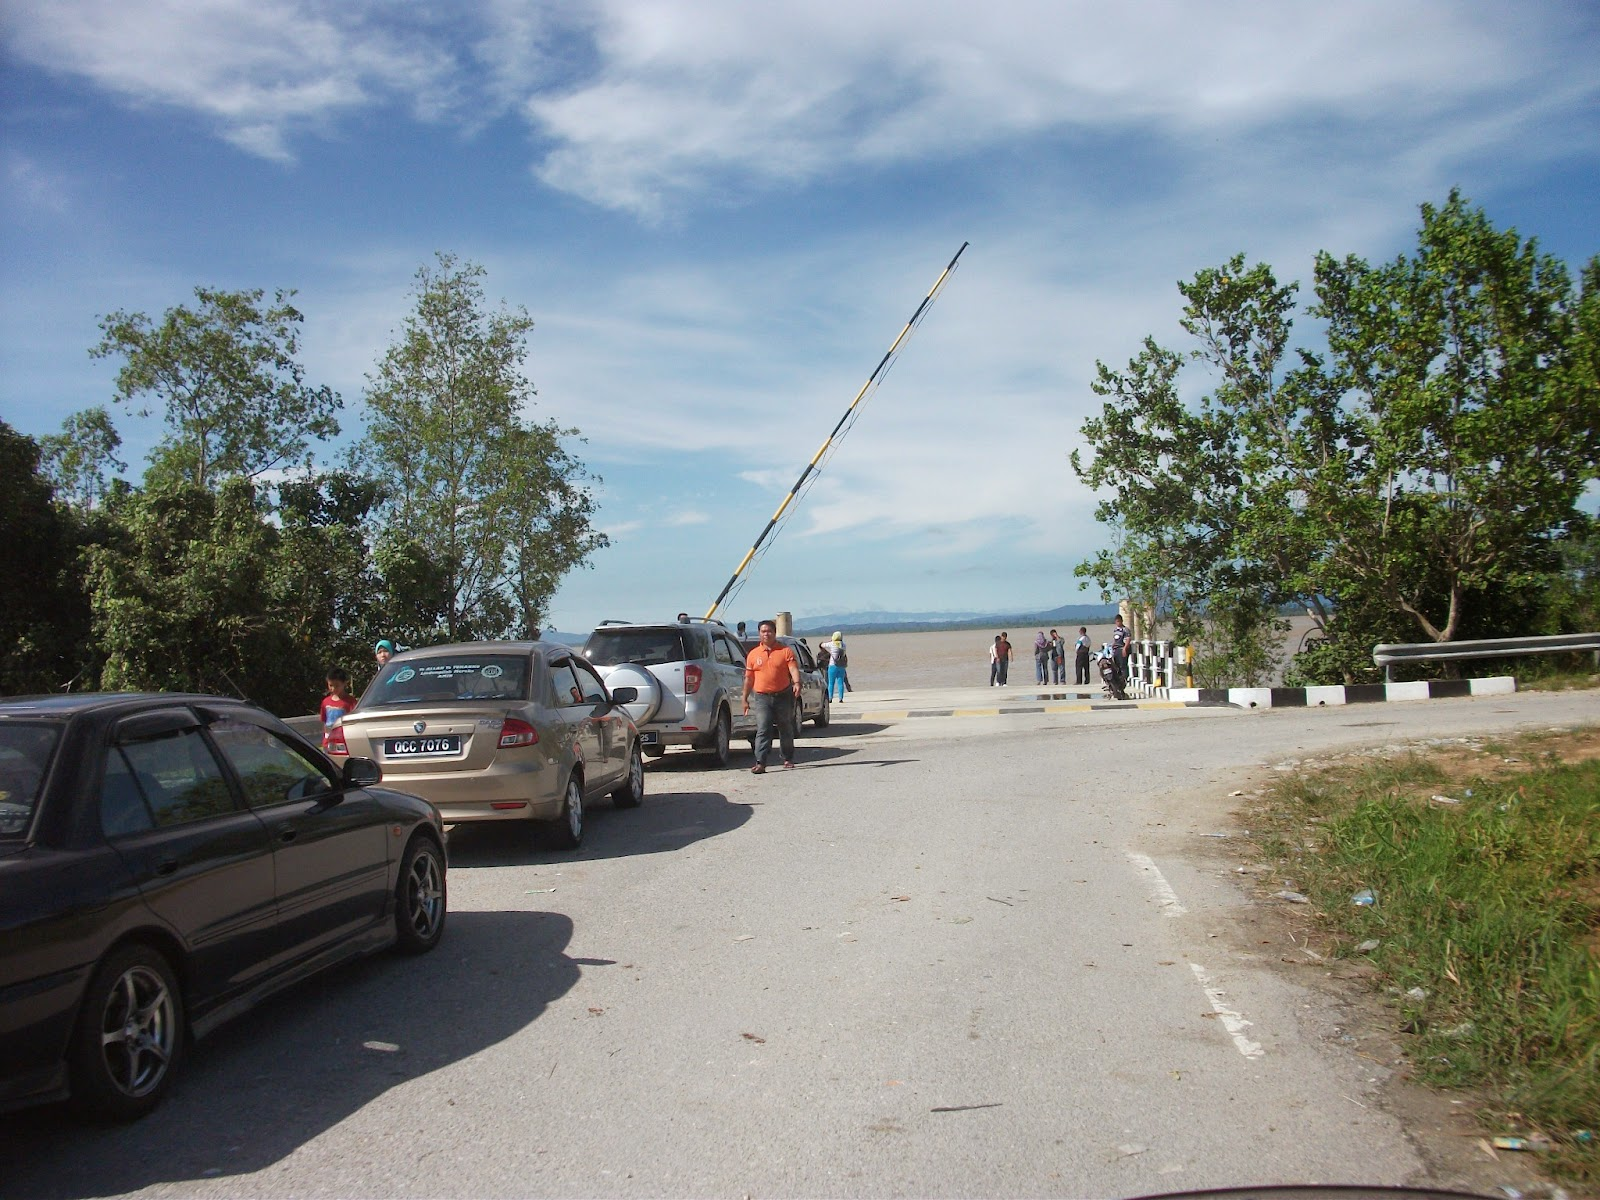 Vehicles queueing at Batang Lupar ferry crossing at Kampung Teriso - Pix: Nelson's Adventure